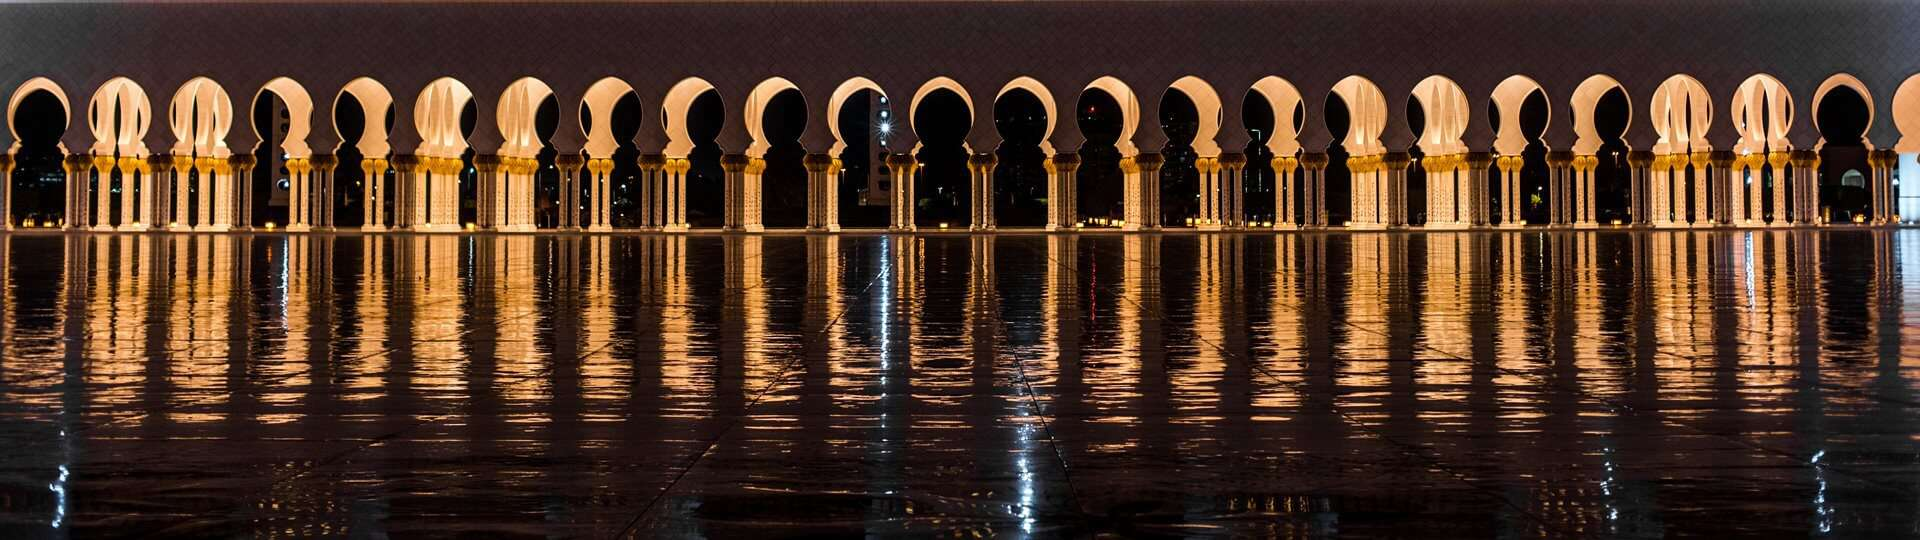 Light reflecting in the pools of water at the Sheikh Zayed Grand Mosque, Abu Dhabi.